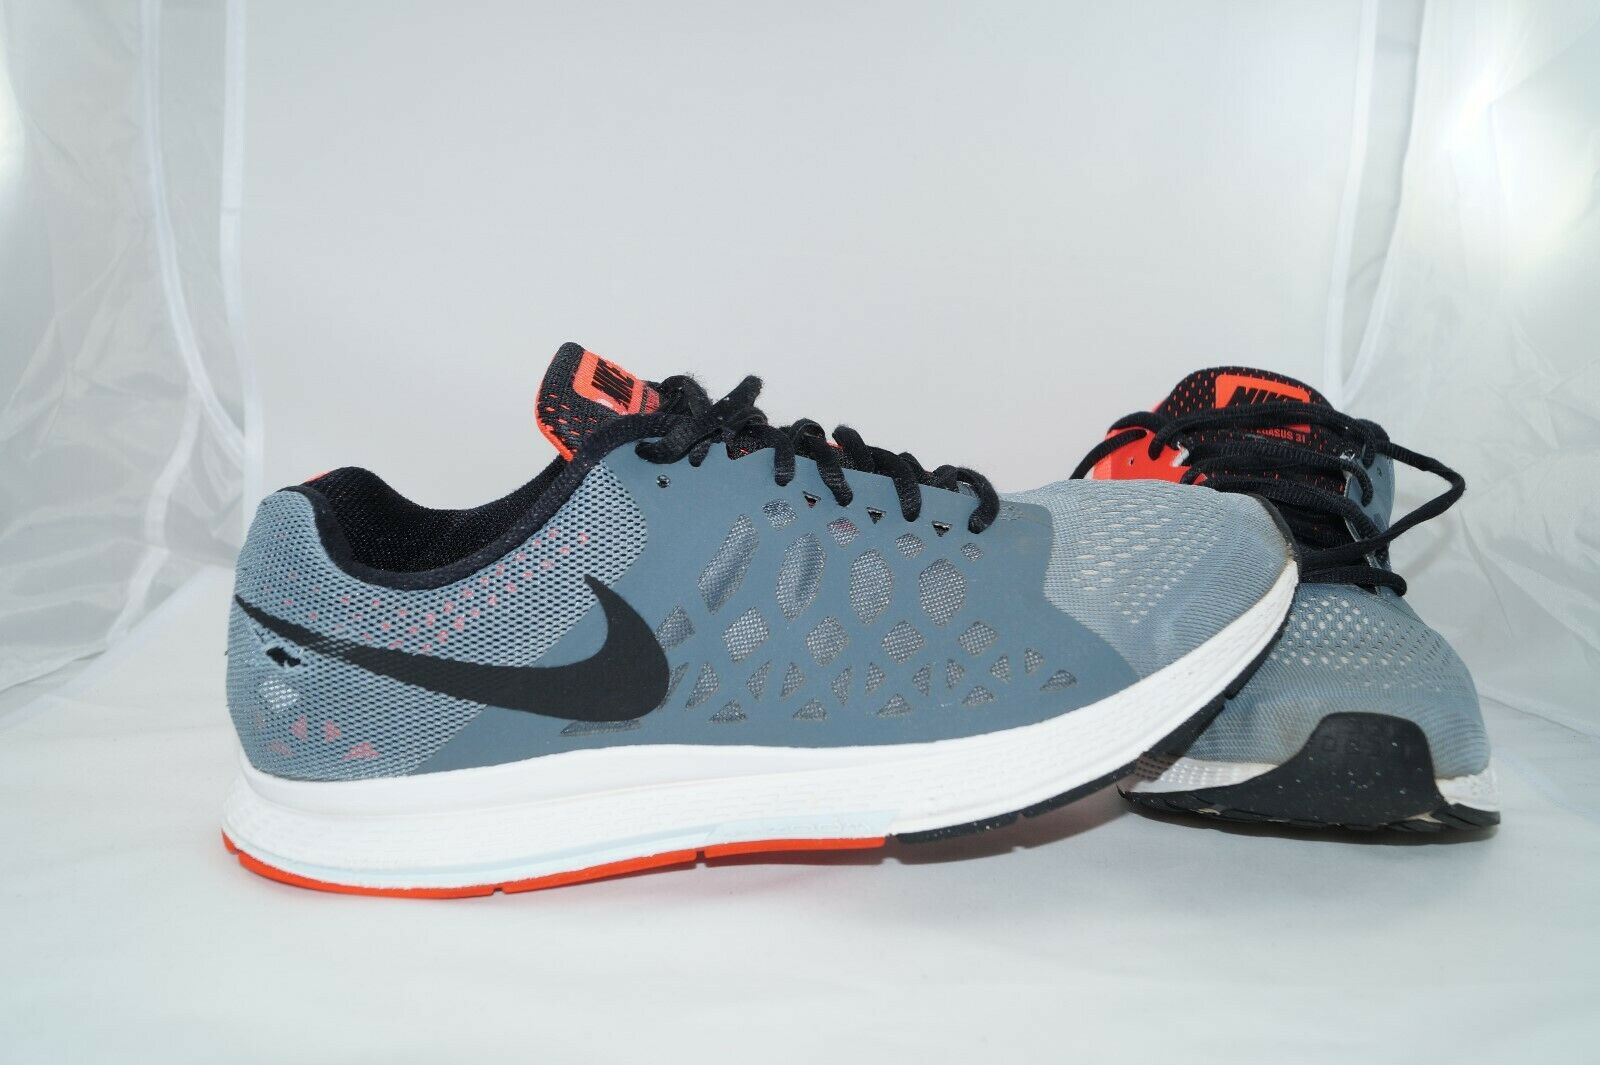 Nike Air Zoom Pegasus 31 EU 45,5 US 11,5 UK 10,5 Sports zapatos 652925-403